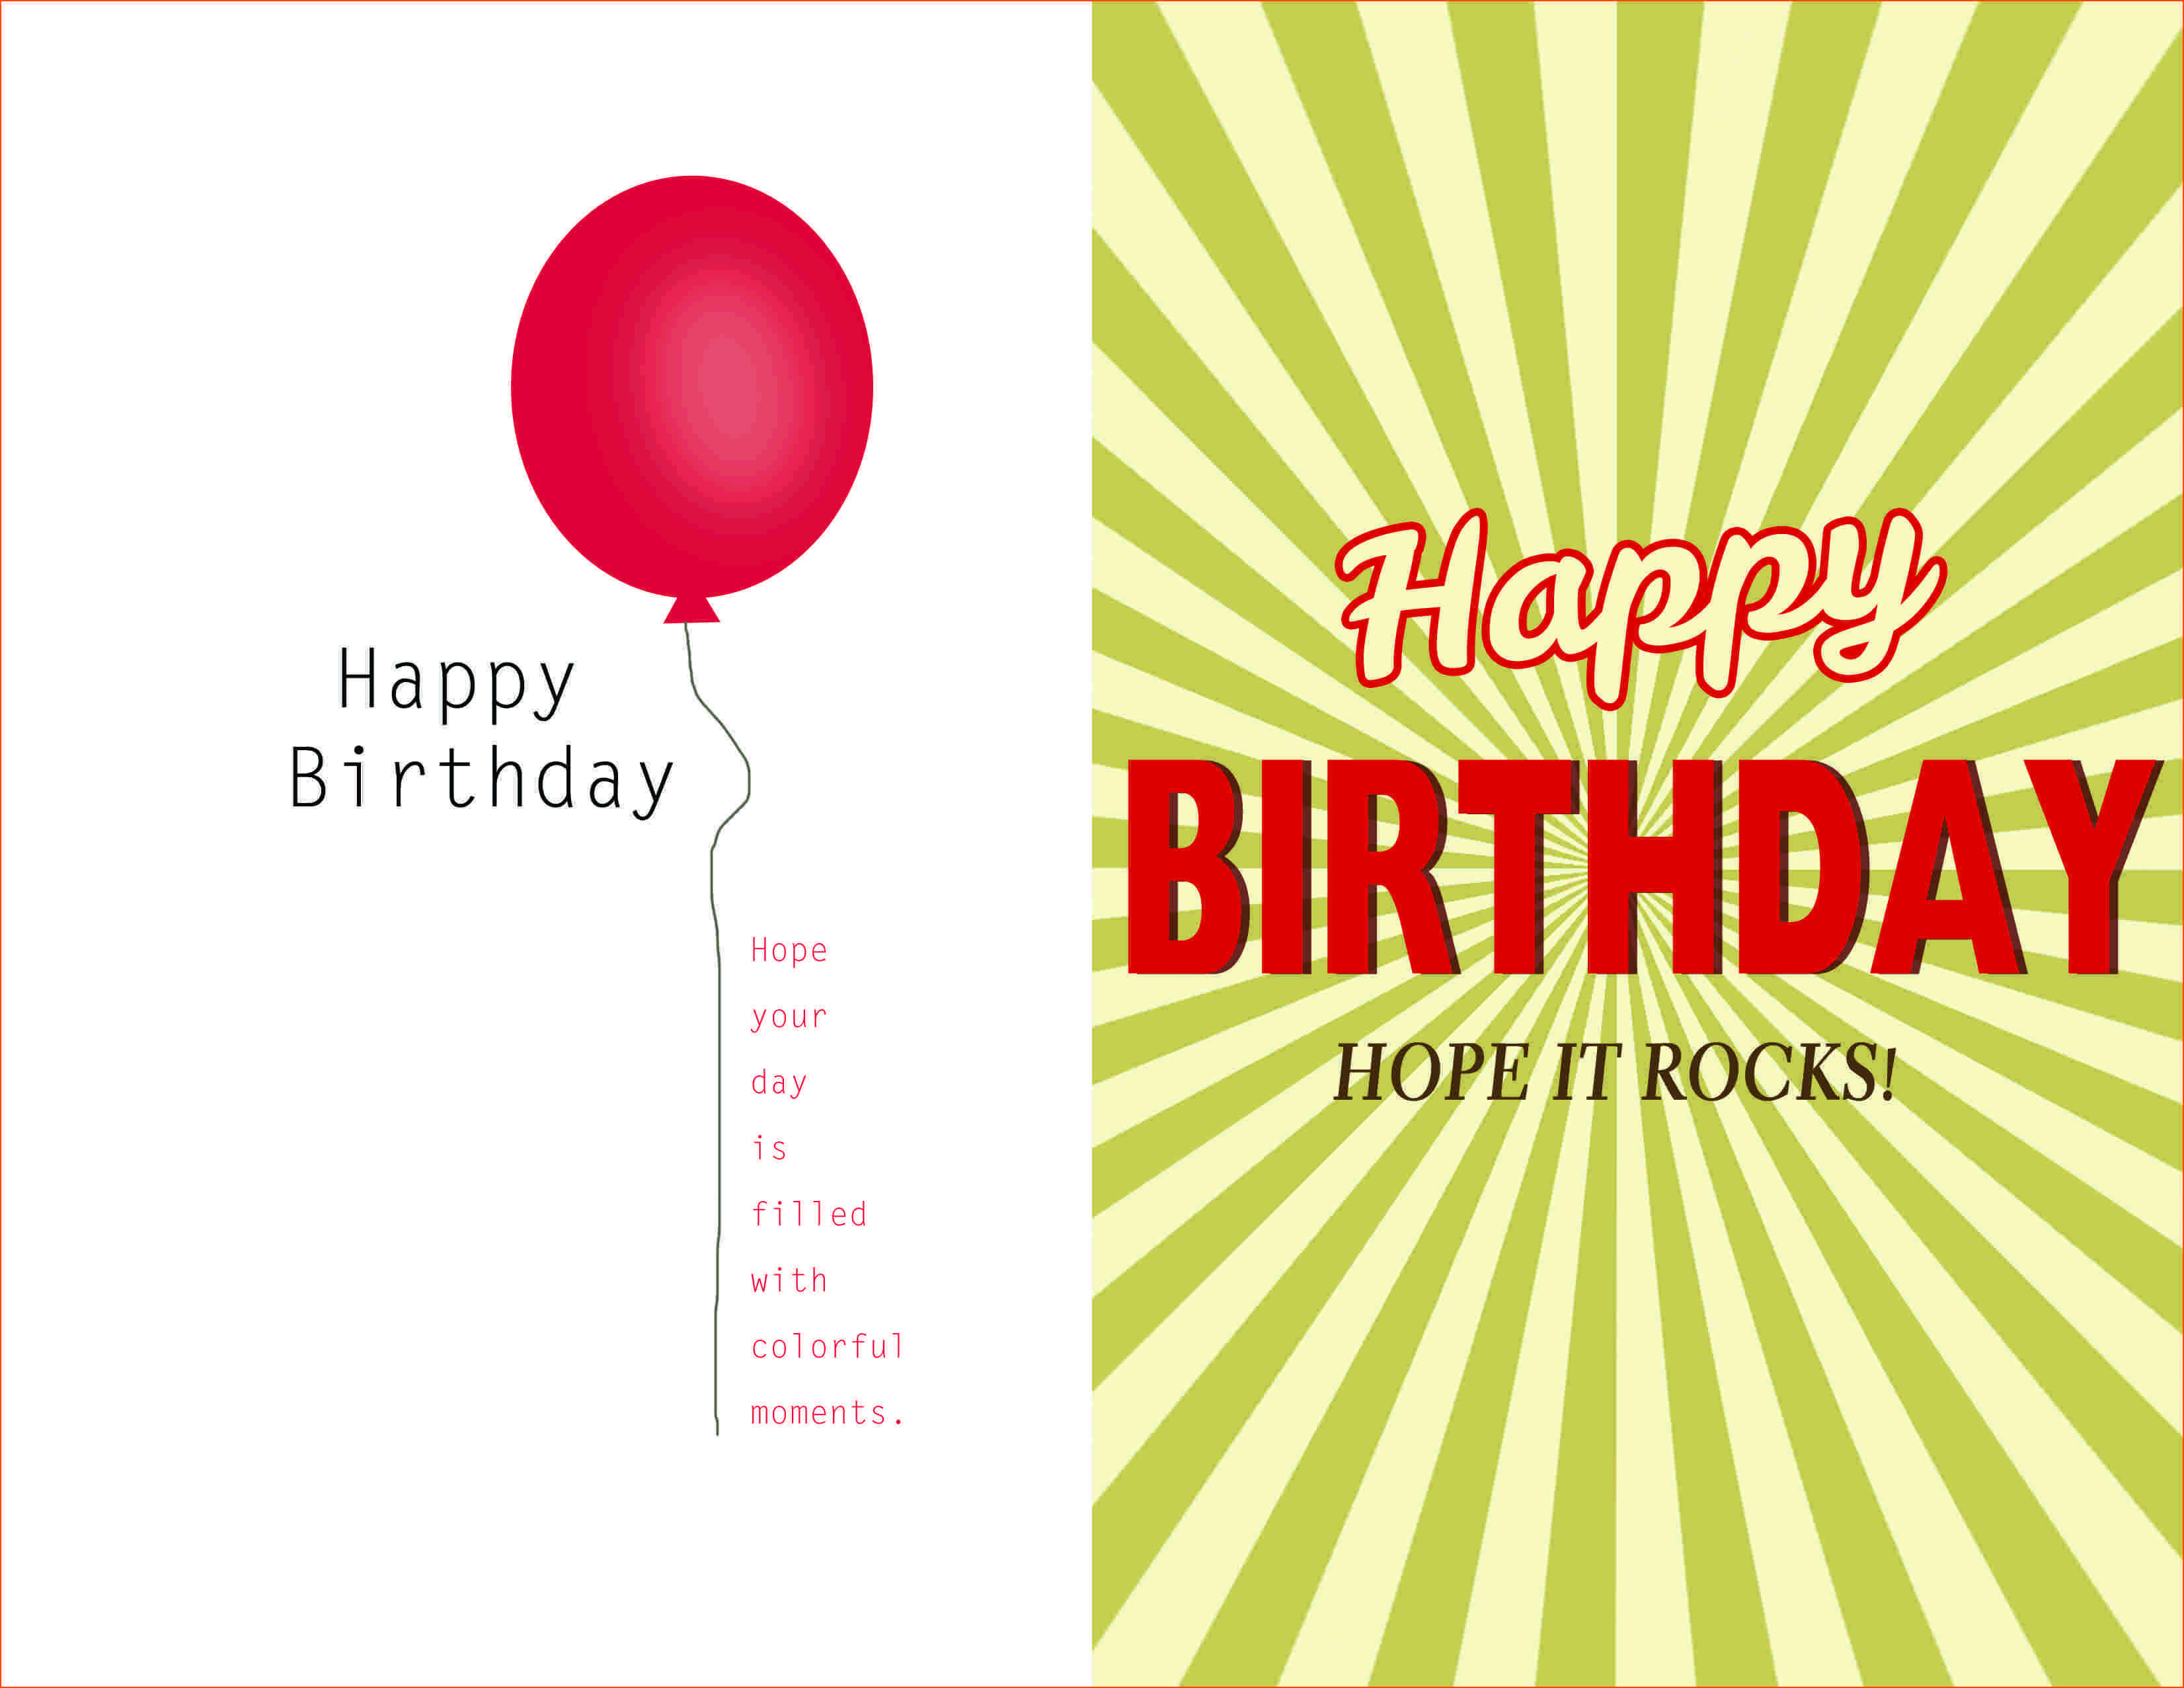 010 Template For Birthday Card Ideas From Westernmotodrags Regarding Birthday Card Publisher Template